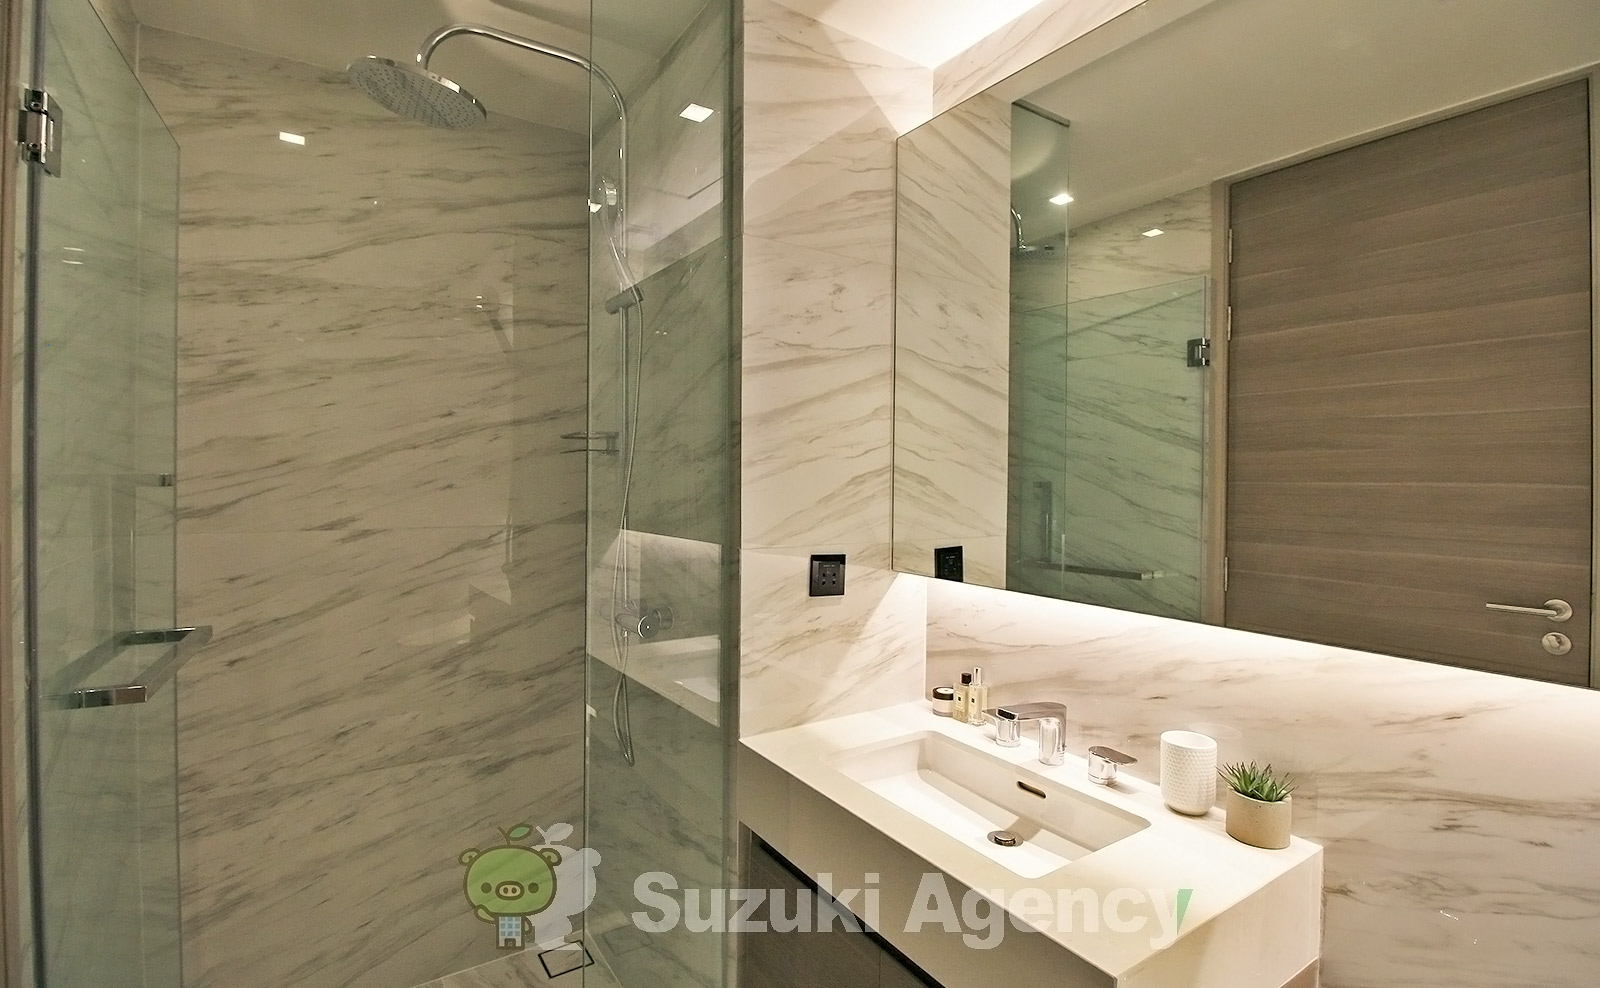 VOQUE Serviced Residence:2Bed Room Photos No.12